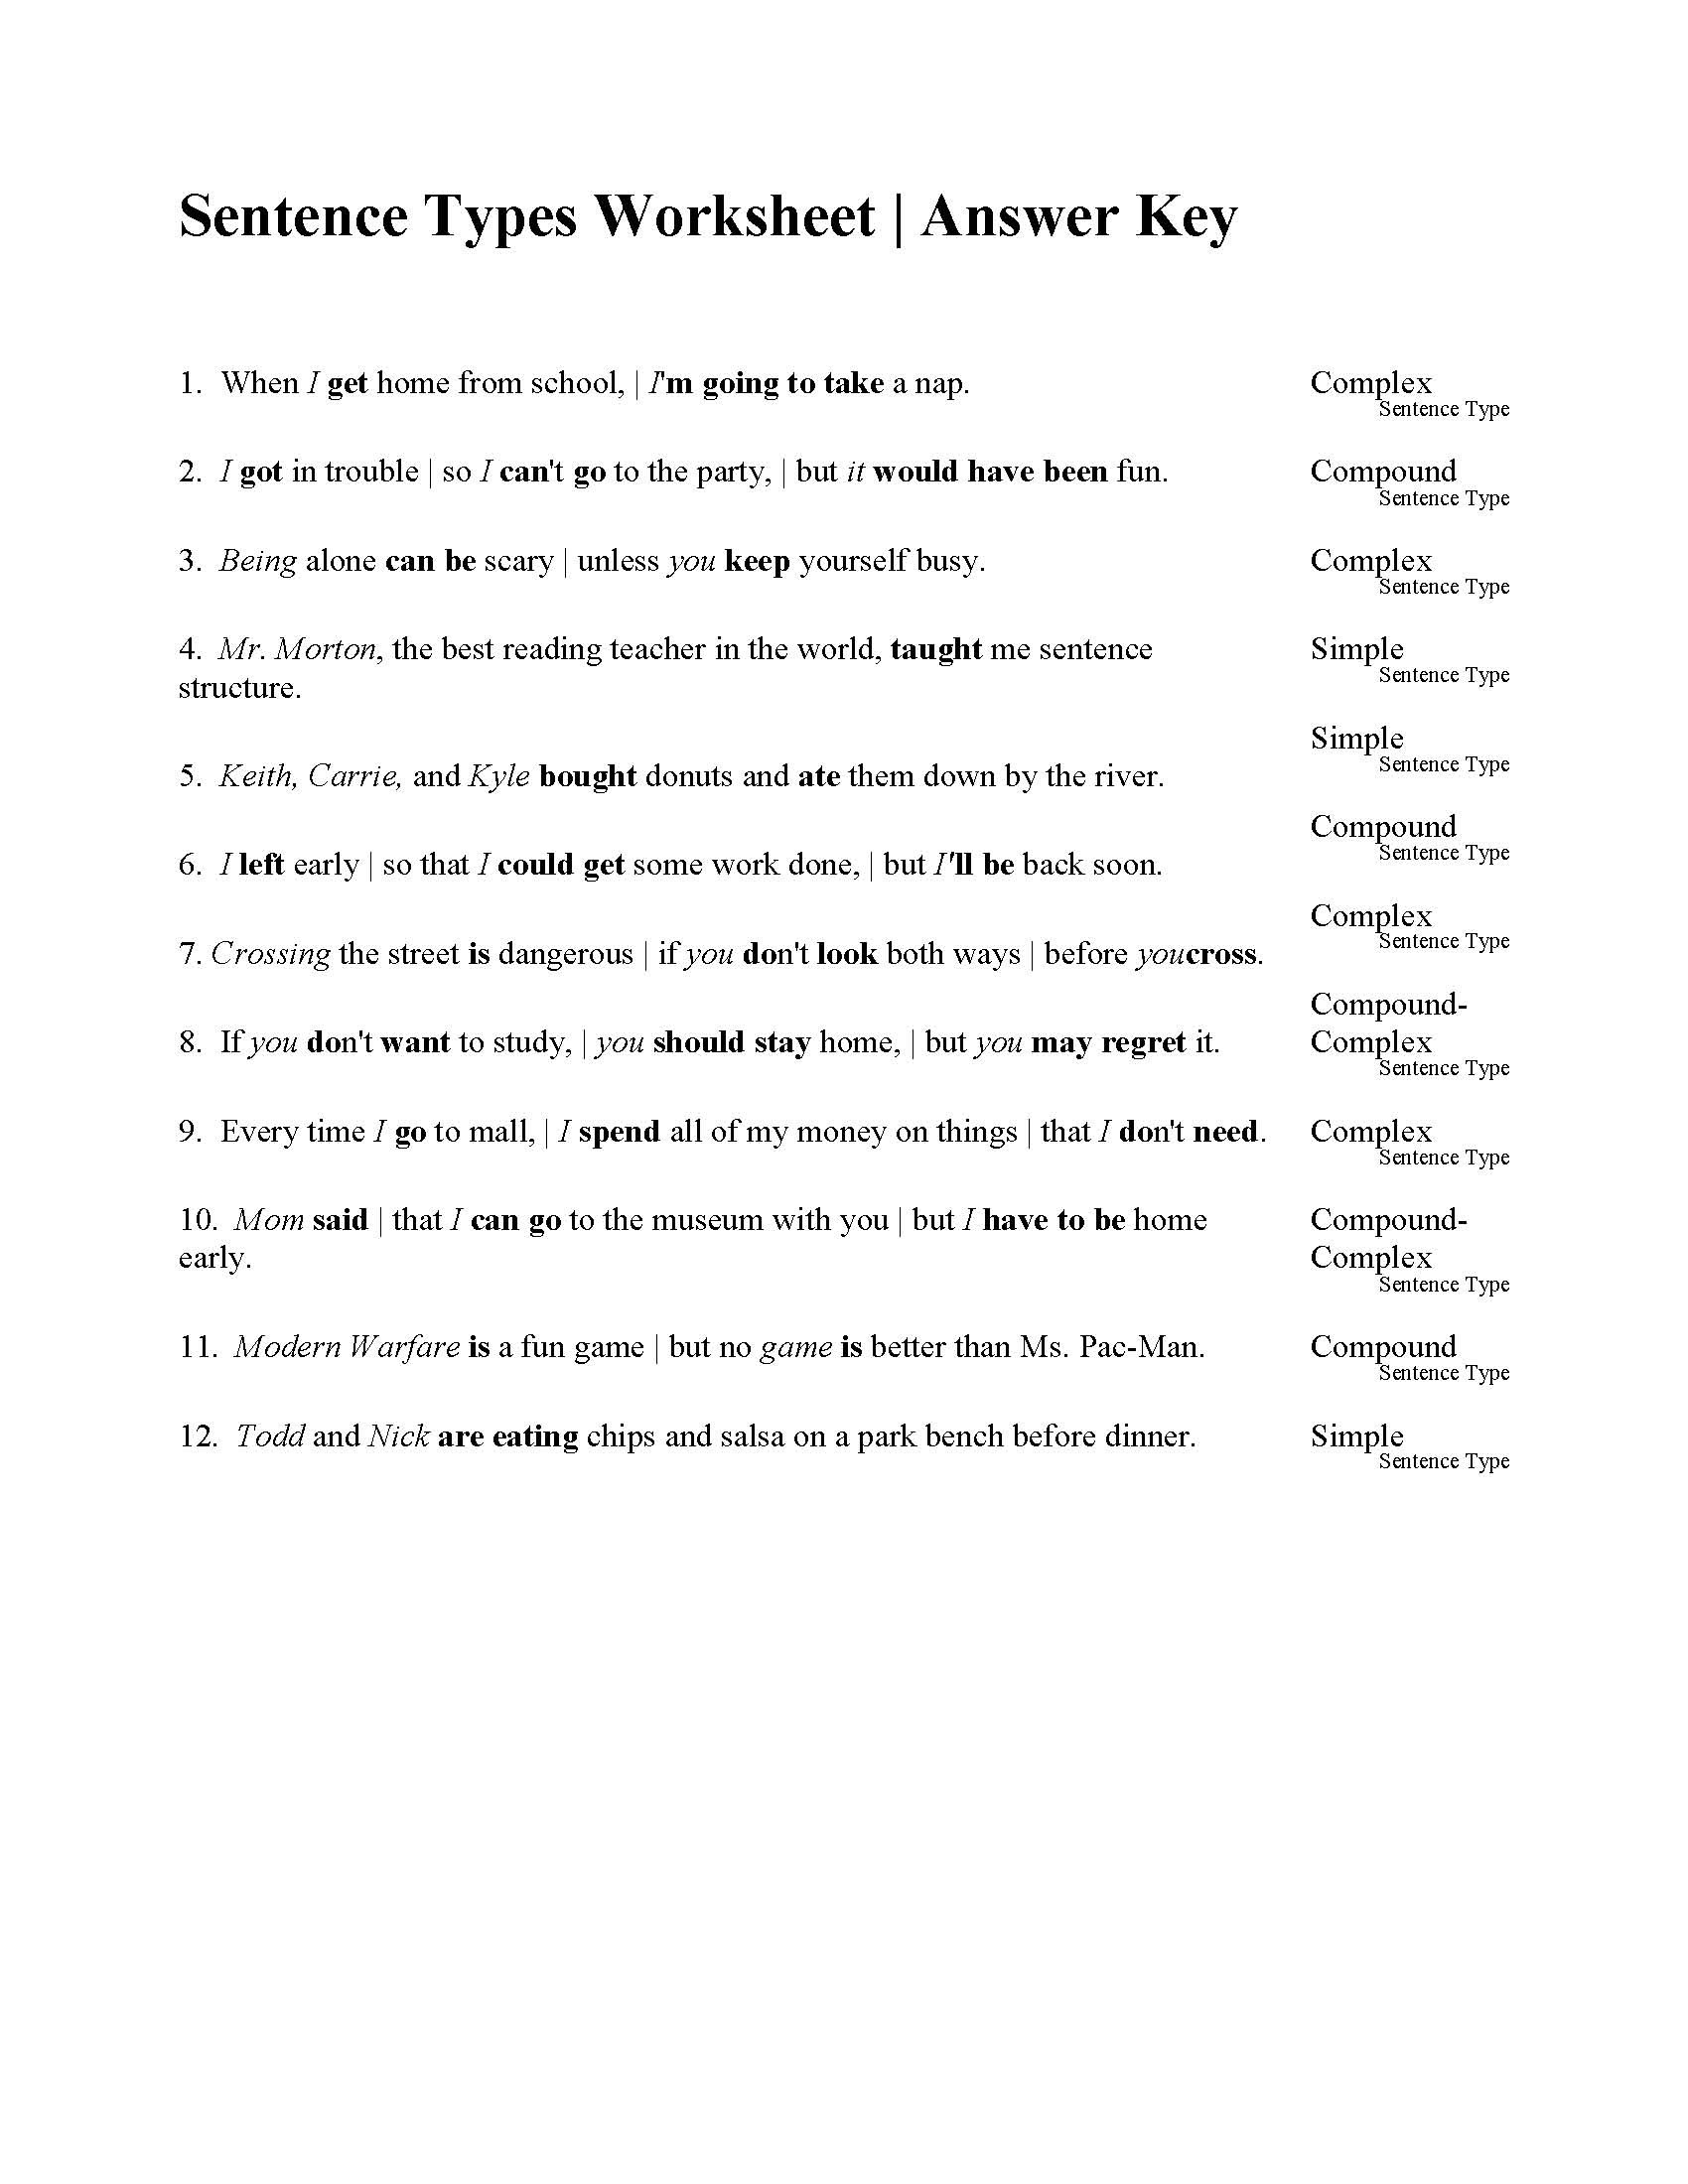 Topic Sentence Worksheets 3rd Grade Sentences Types Worksheet Answers Sentence Patterns